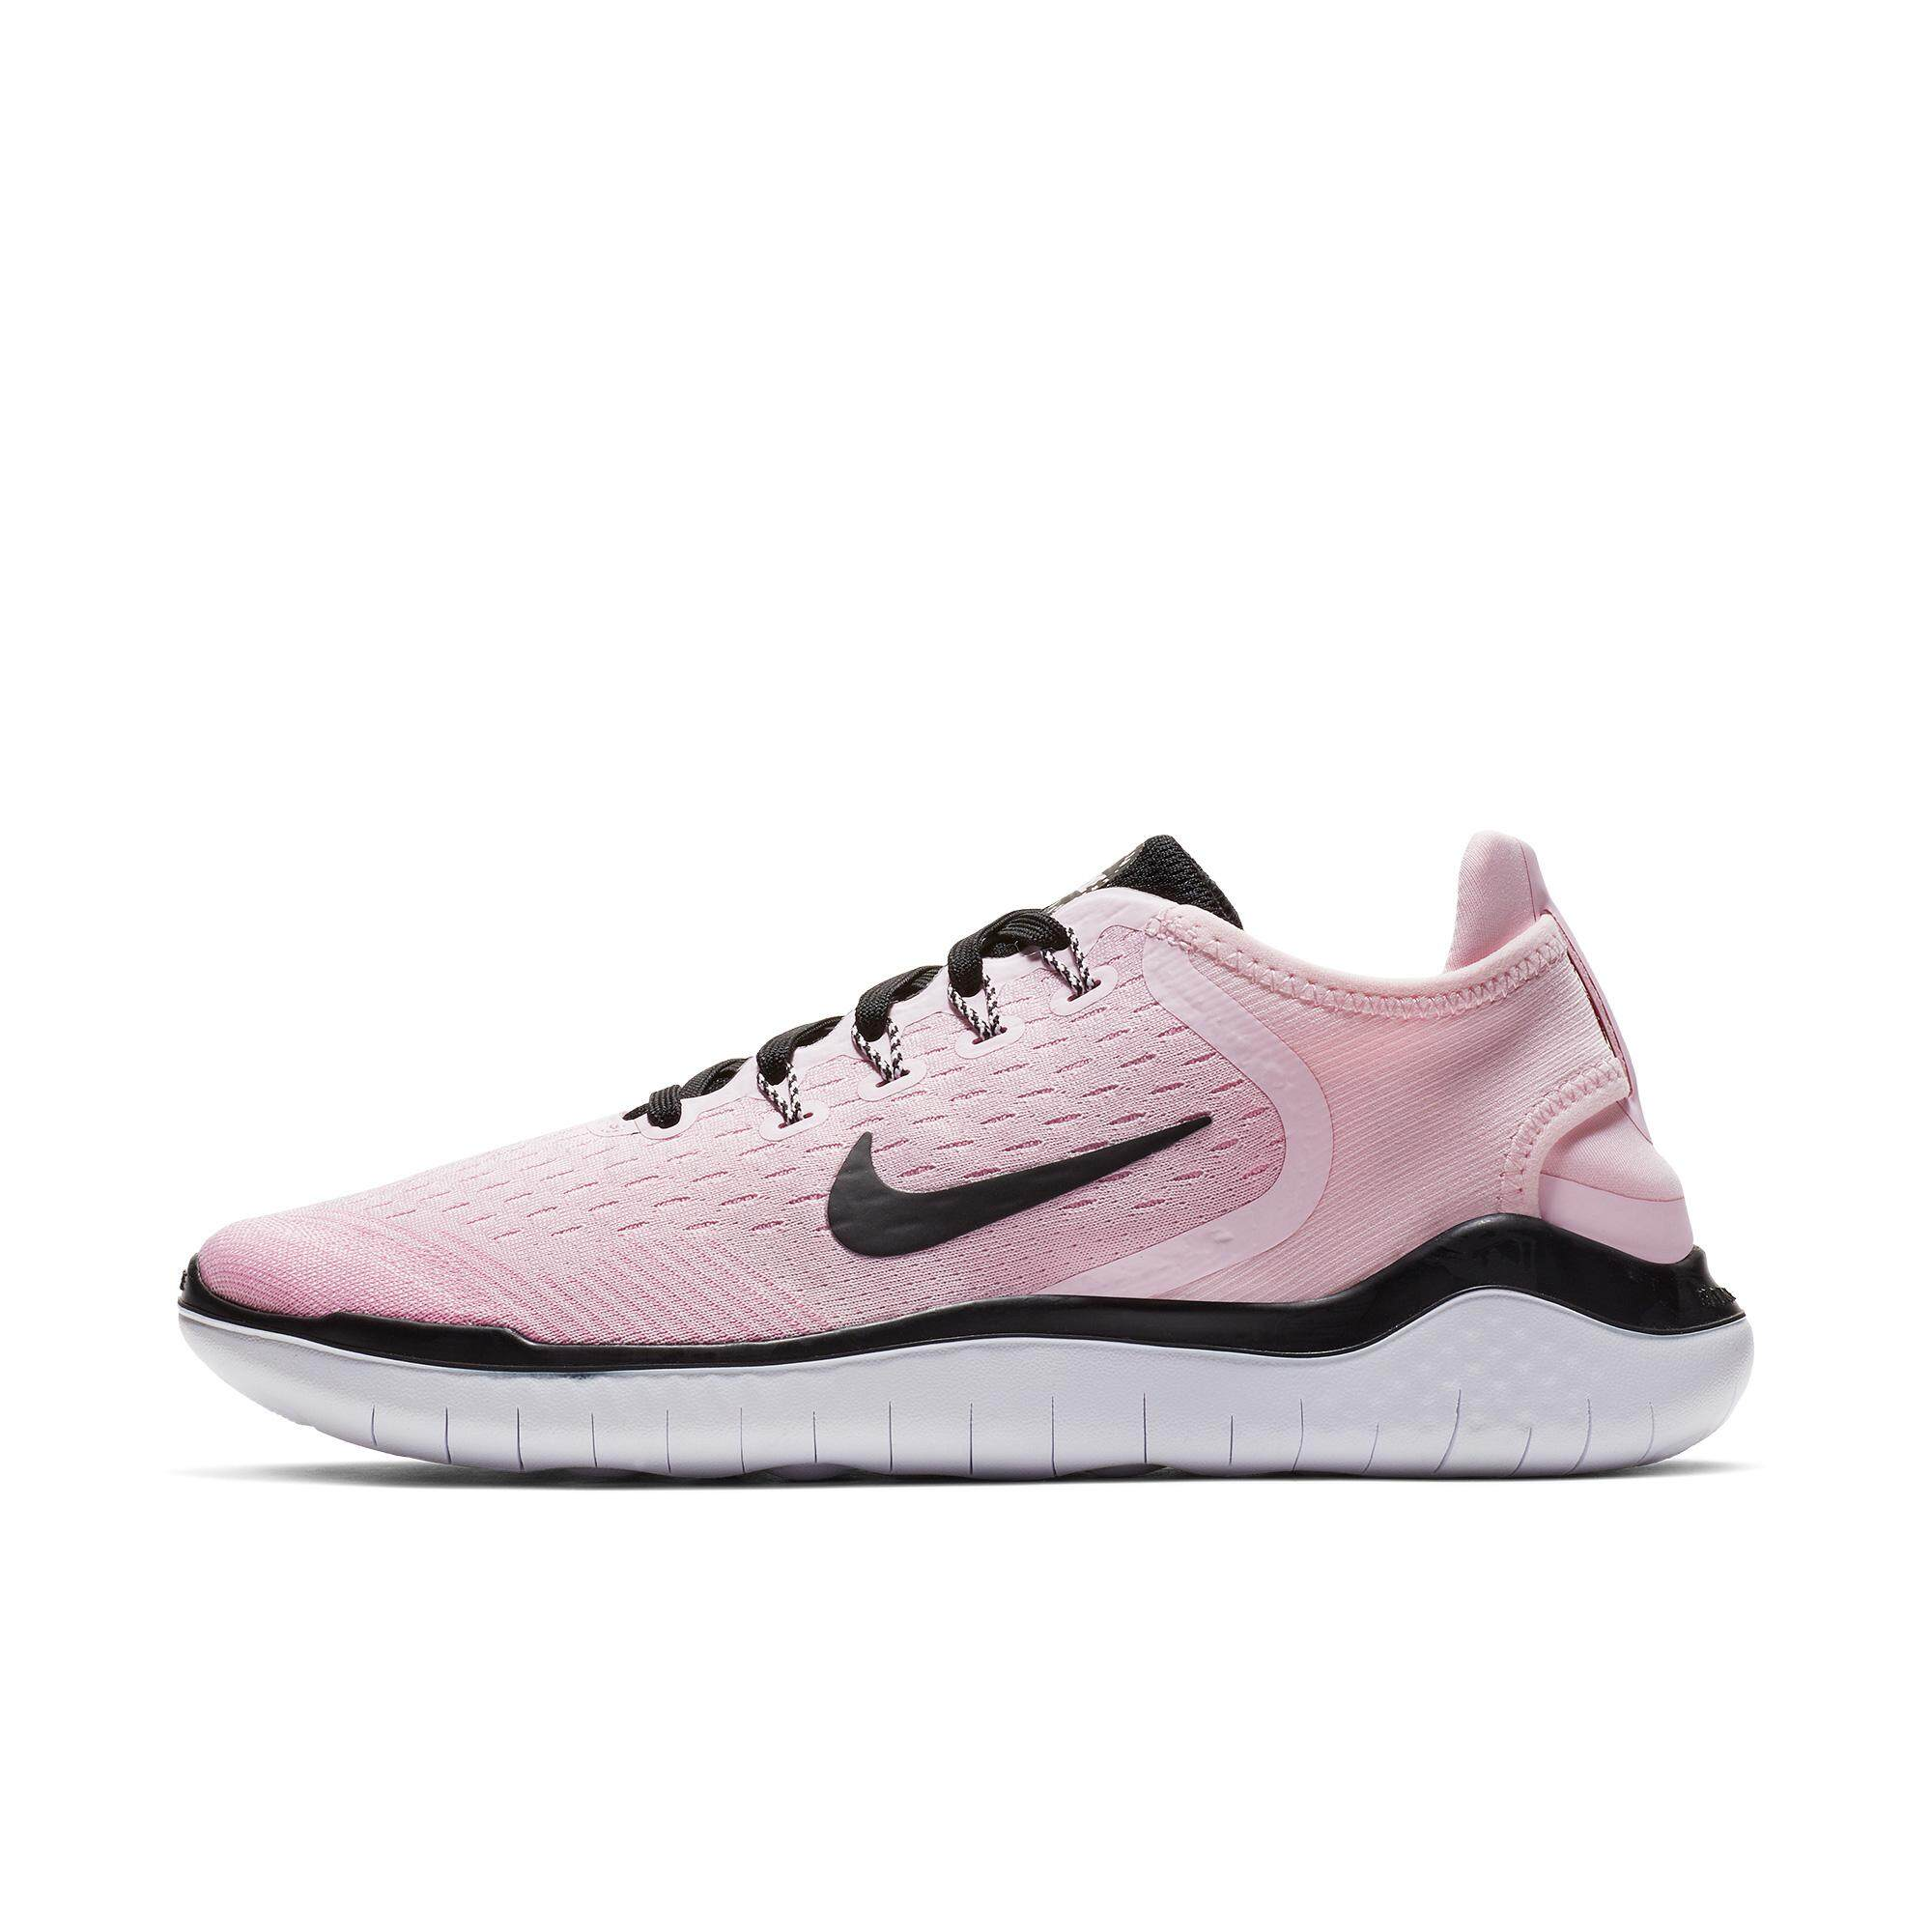 hot sale online cd688 a6f64 Nike FREE RN 2019 new women s shoes running shoes barefoot training sneakers  942837